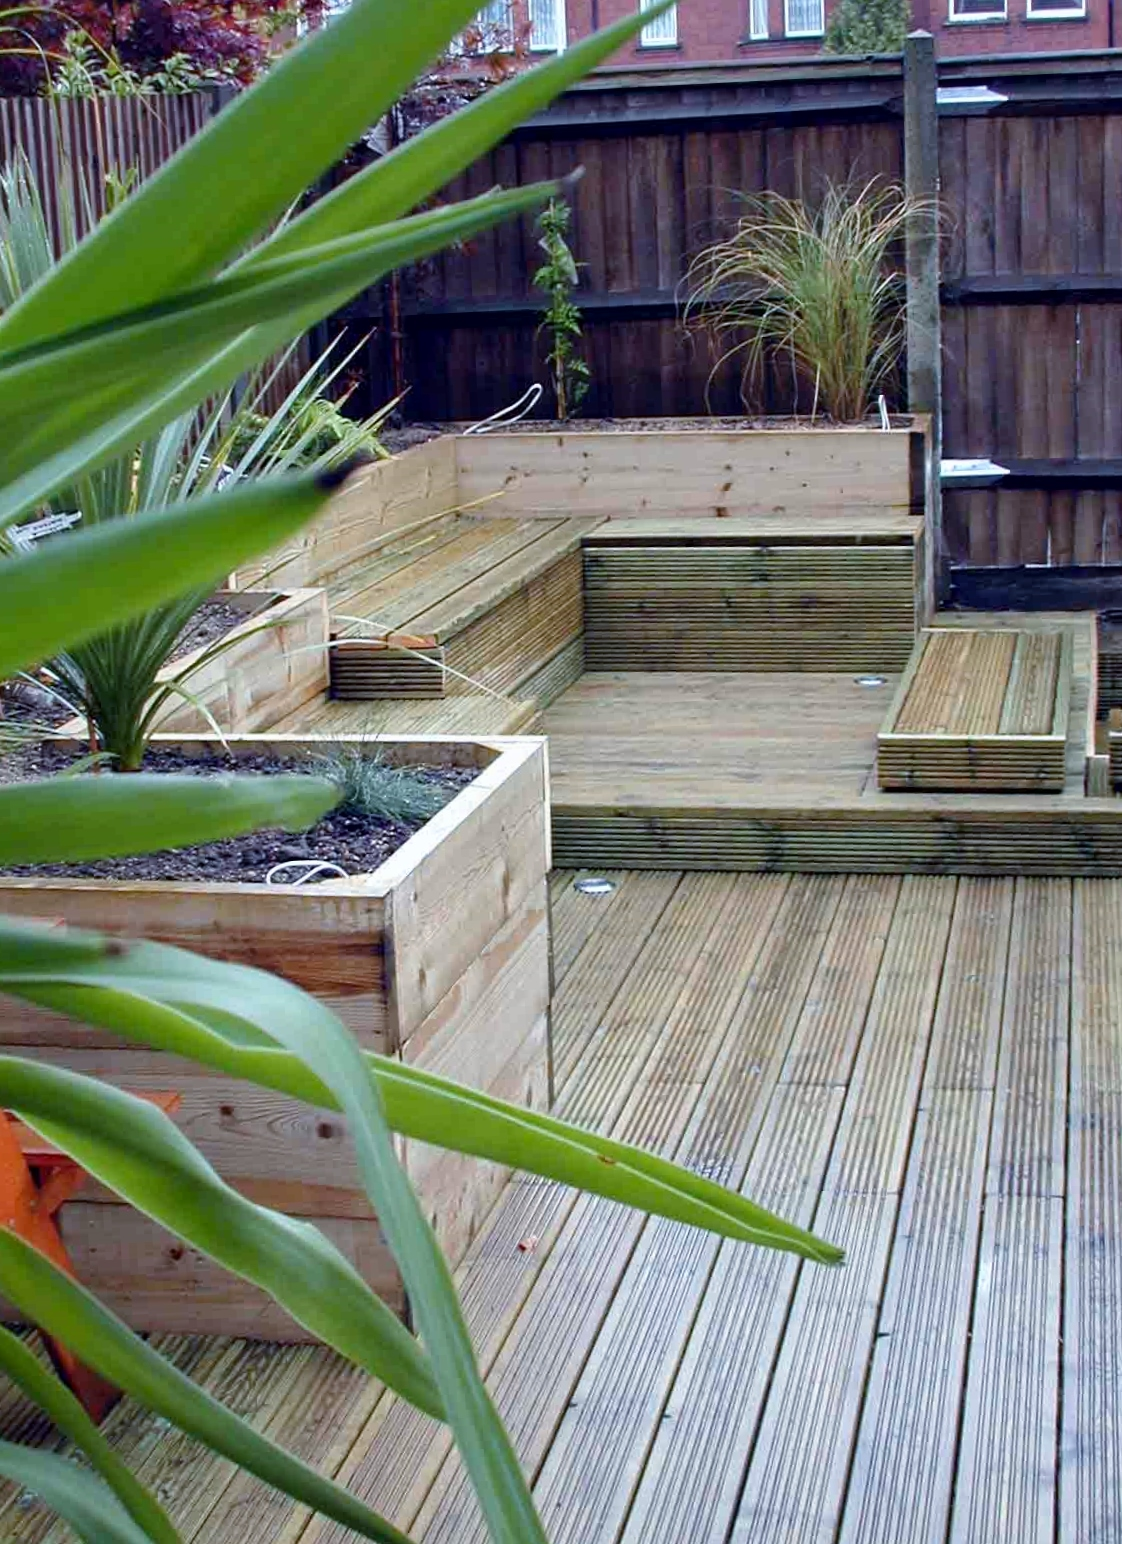 london decking deck builders installers hardwood softwood garden design (46)